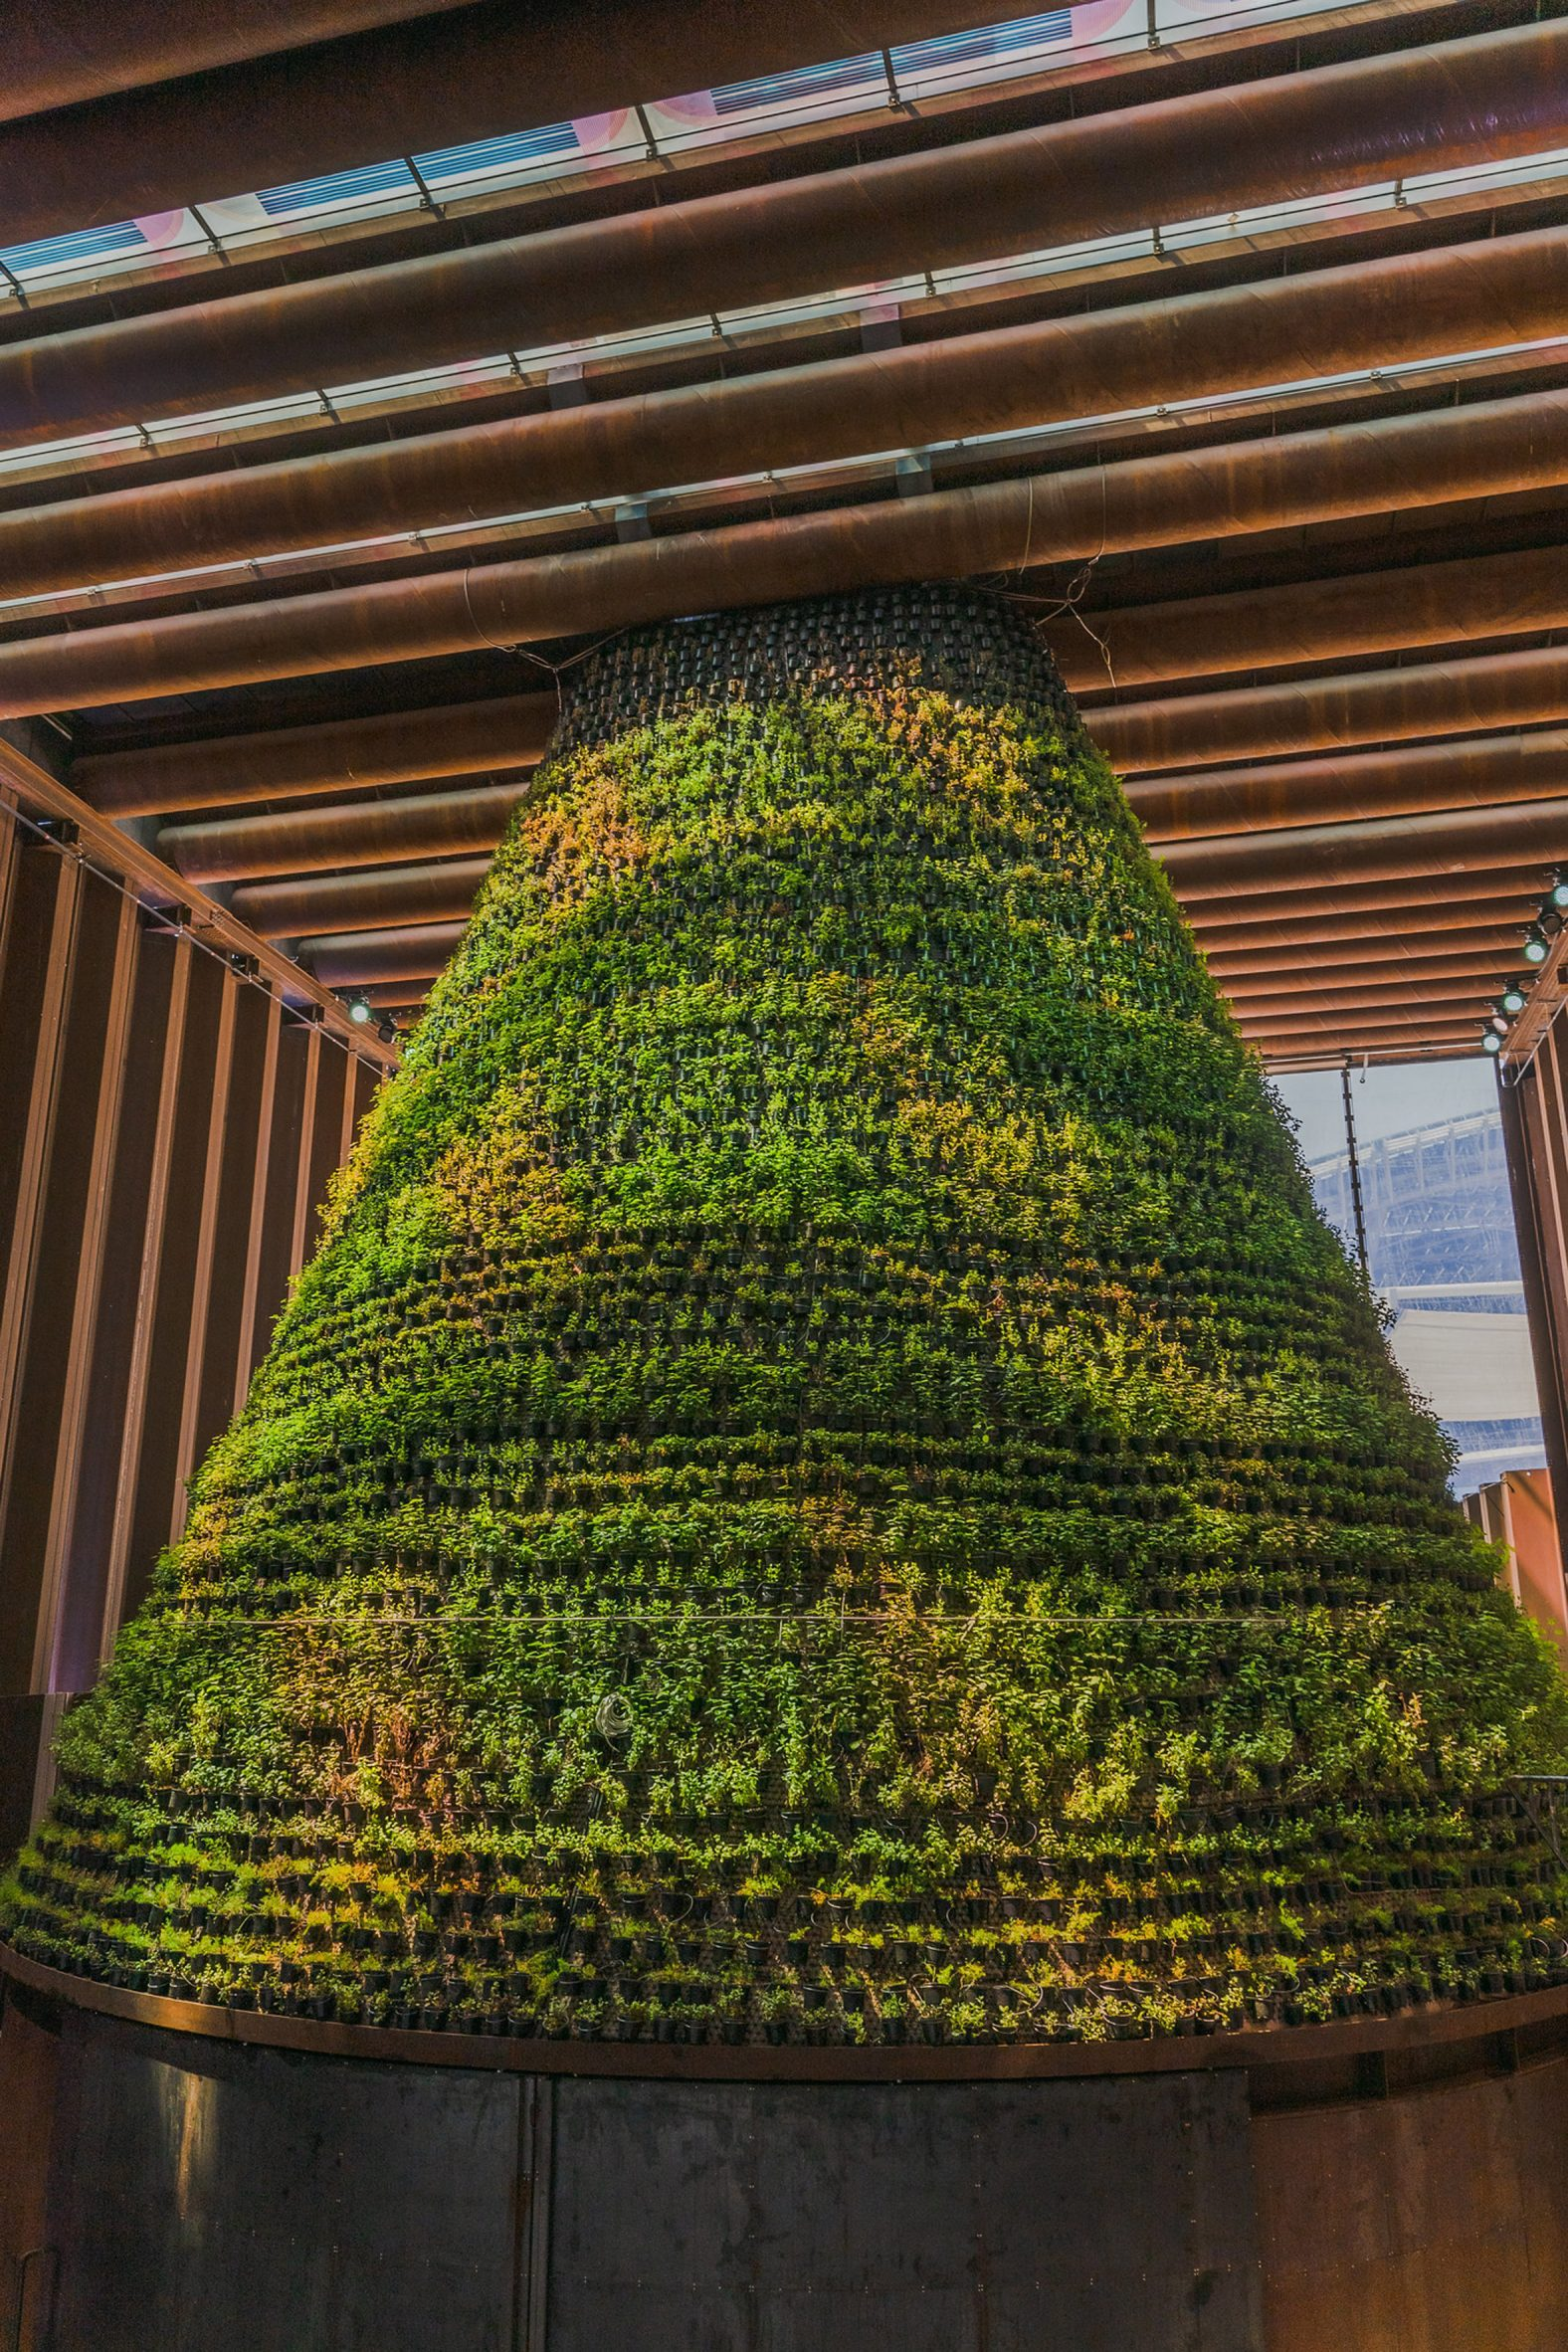 Coloured light falls on a cone-shaped vertical garden in the Dutch pavilion